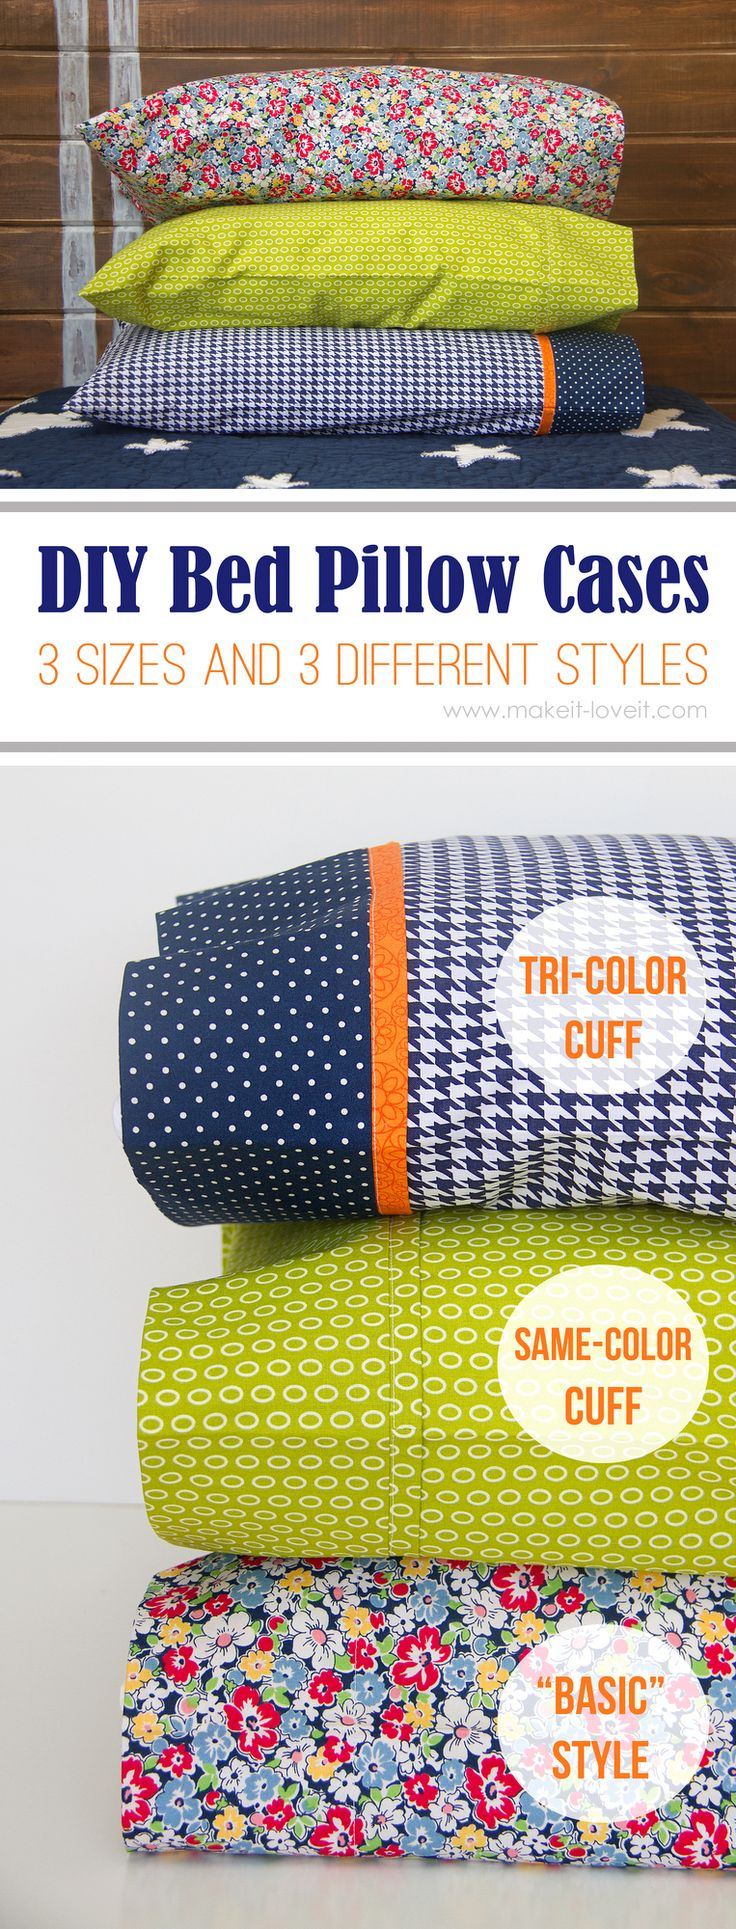 Learn how to save money by sewing your own pillowcase in the style that you want. This guide from Make It & Love It shows you how to create three different pillowcase designs that will give a refresh to any pillow.